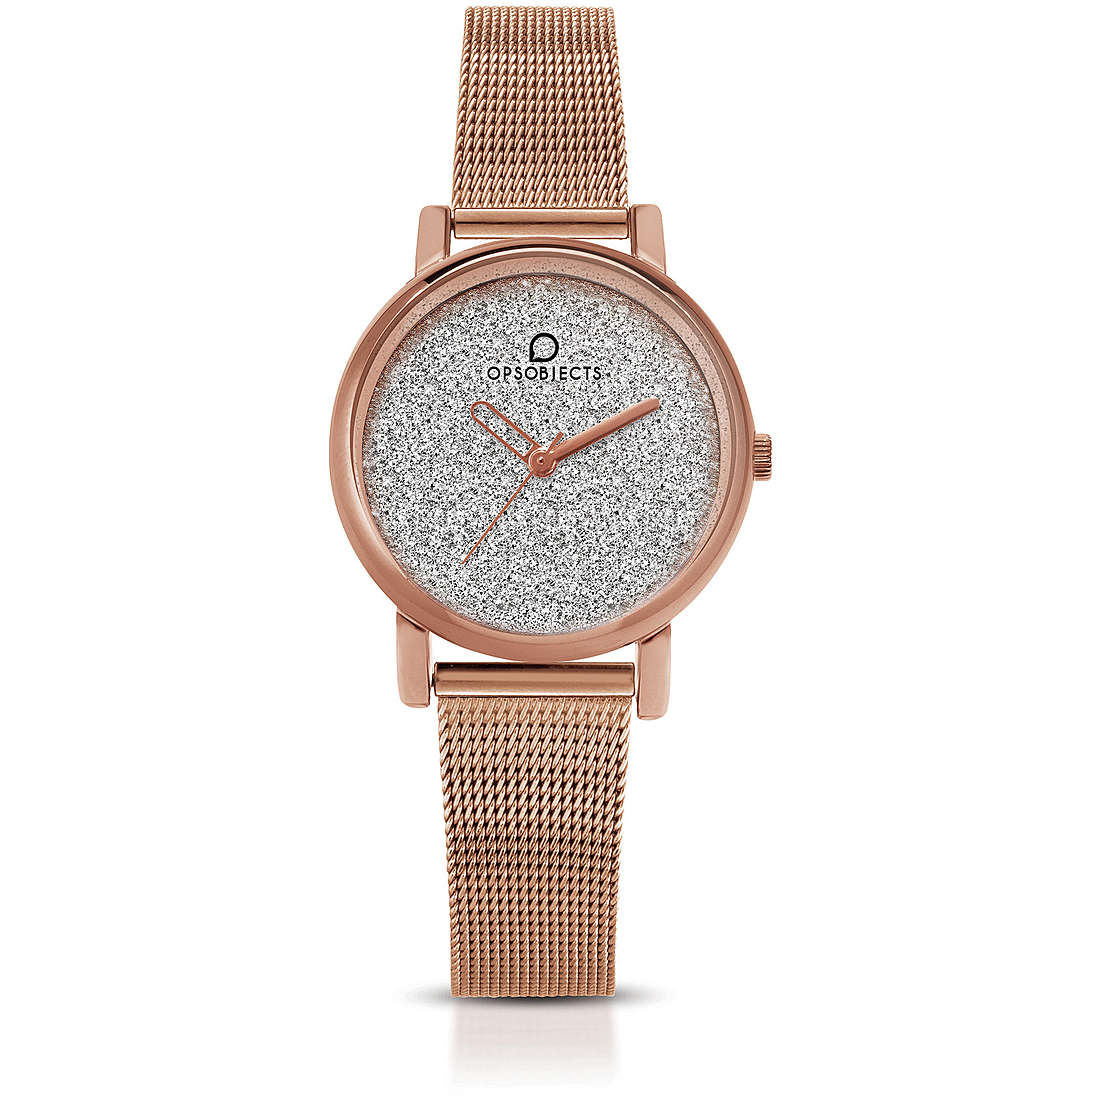 OPS Woman Watch Case made of Metal, With Treatment Pvd Rose Gold OPSPOSH-118-3450